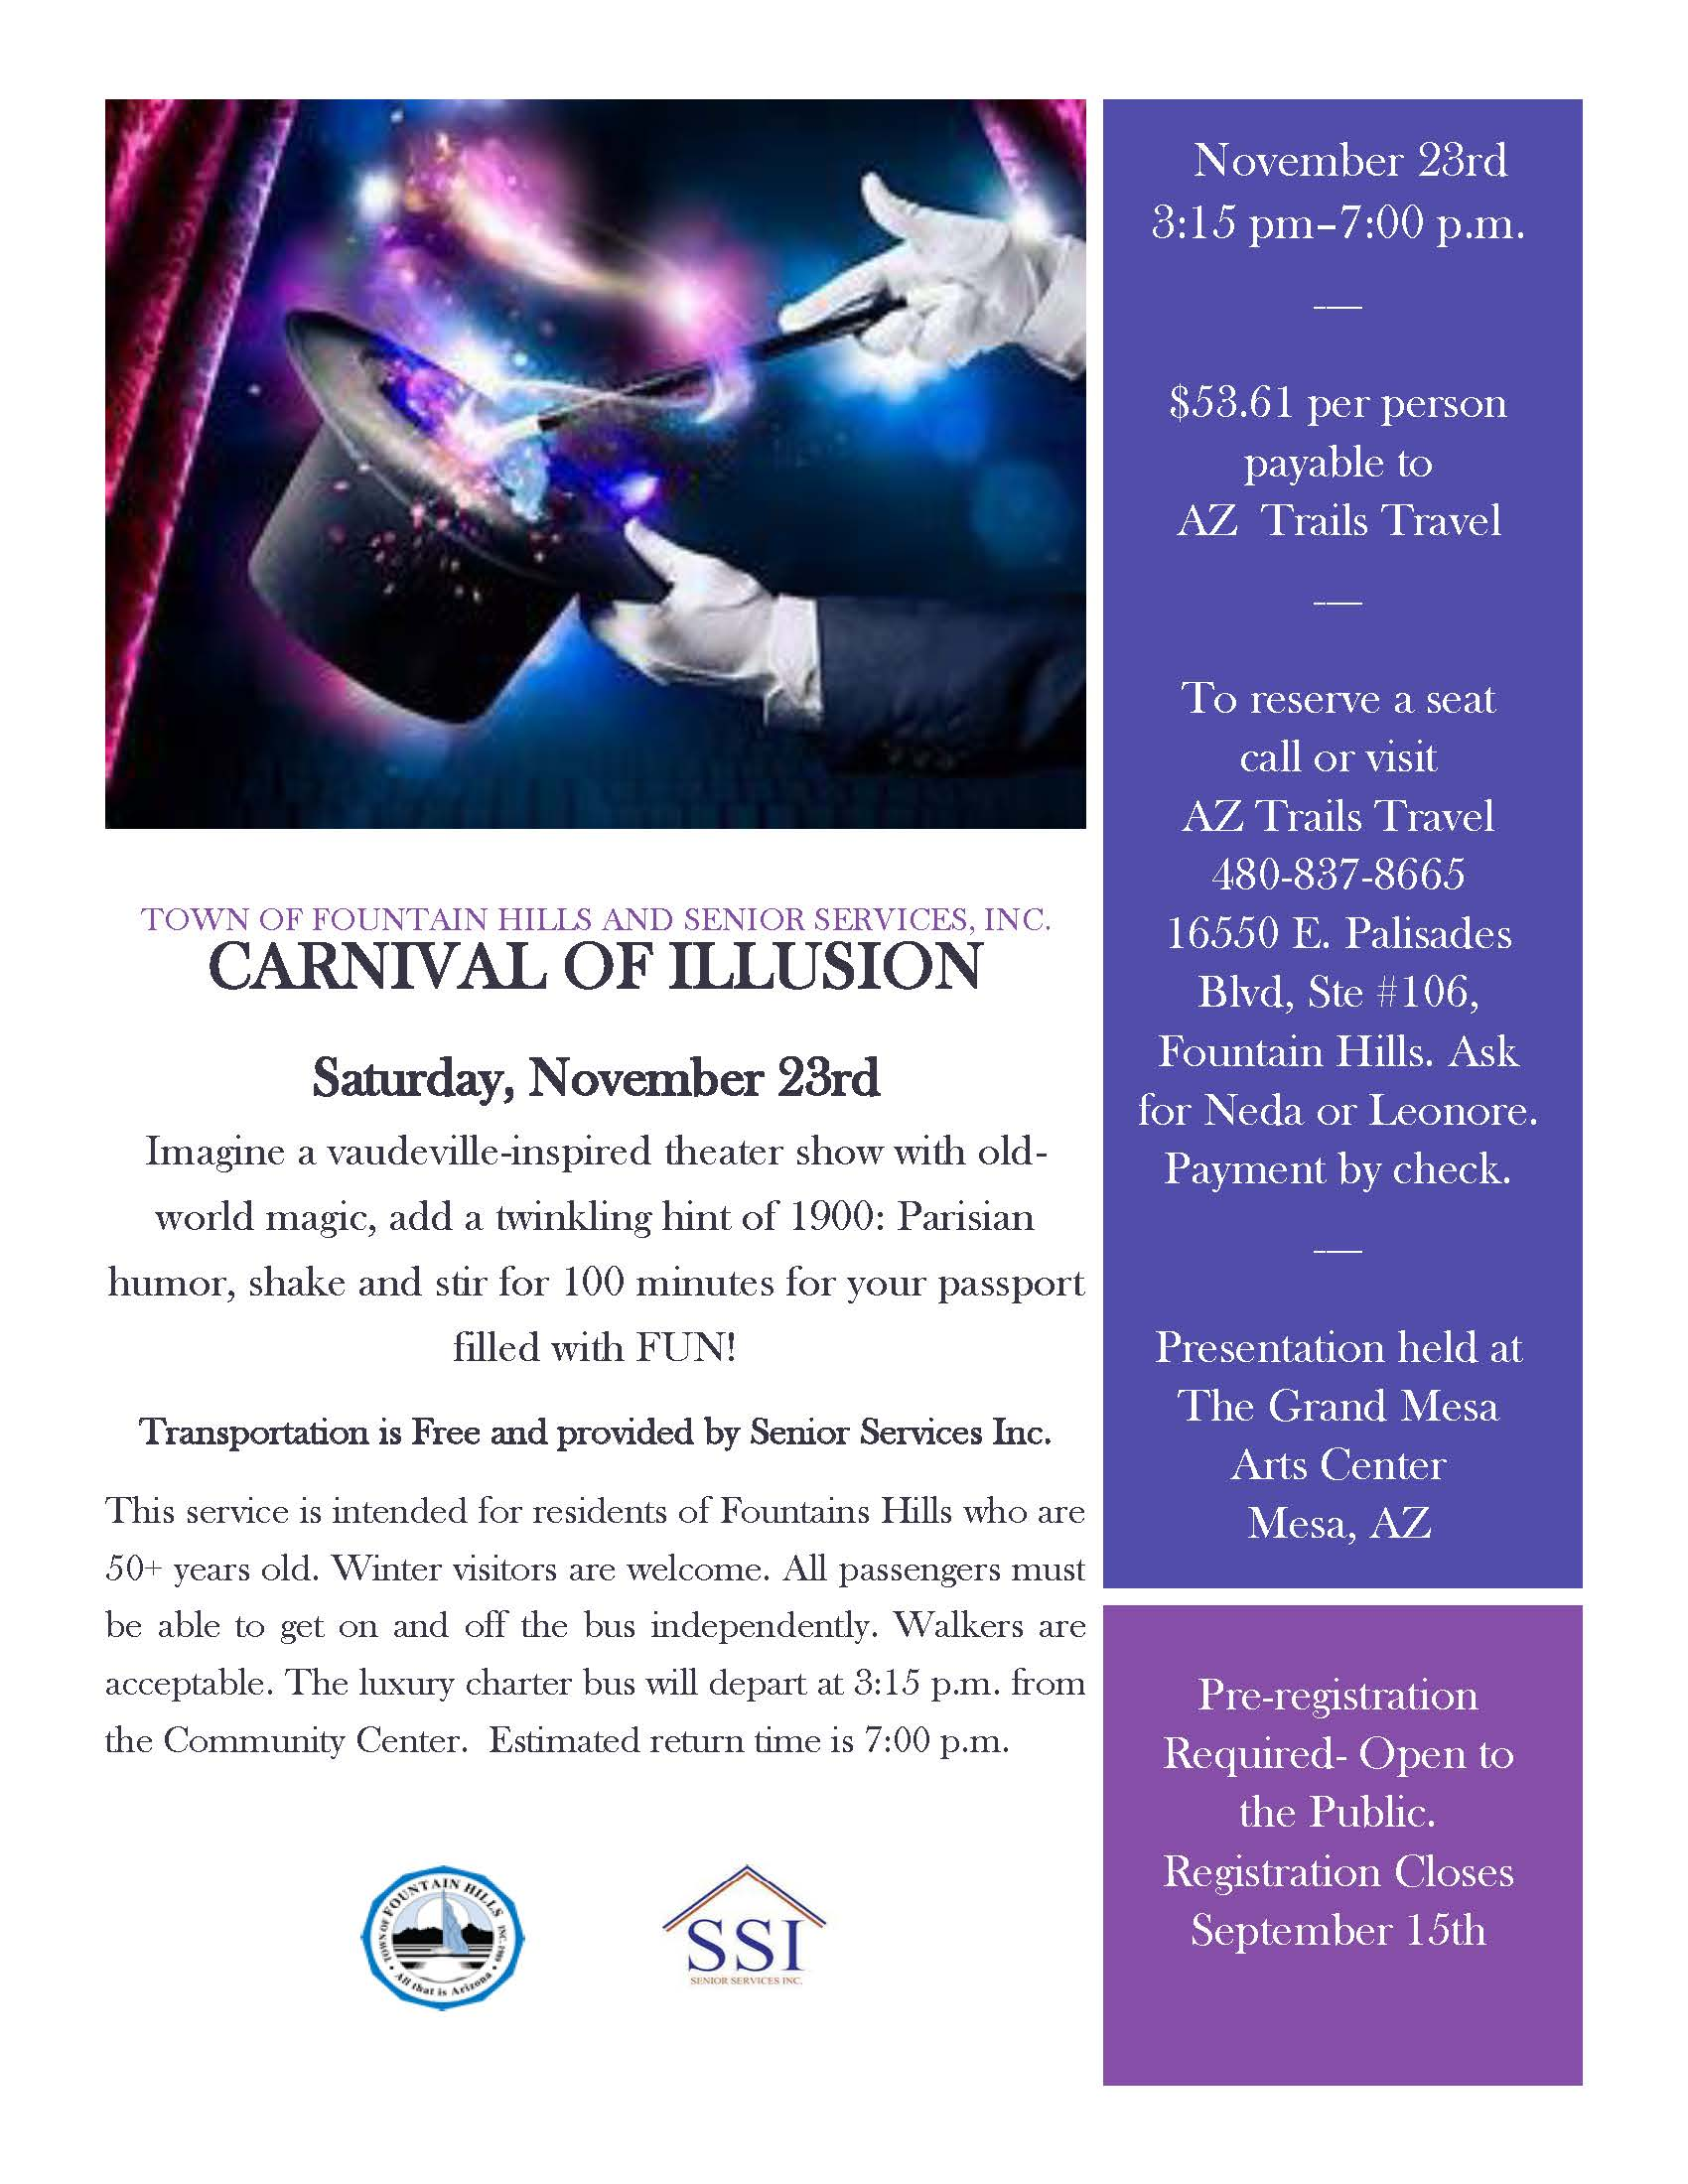 Carnival of Illusion Flyer